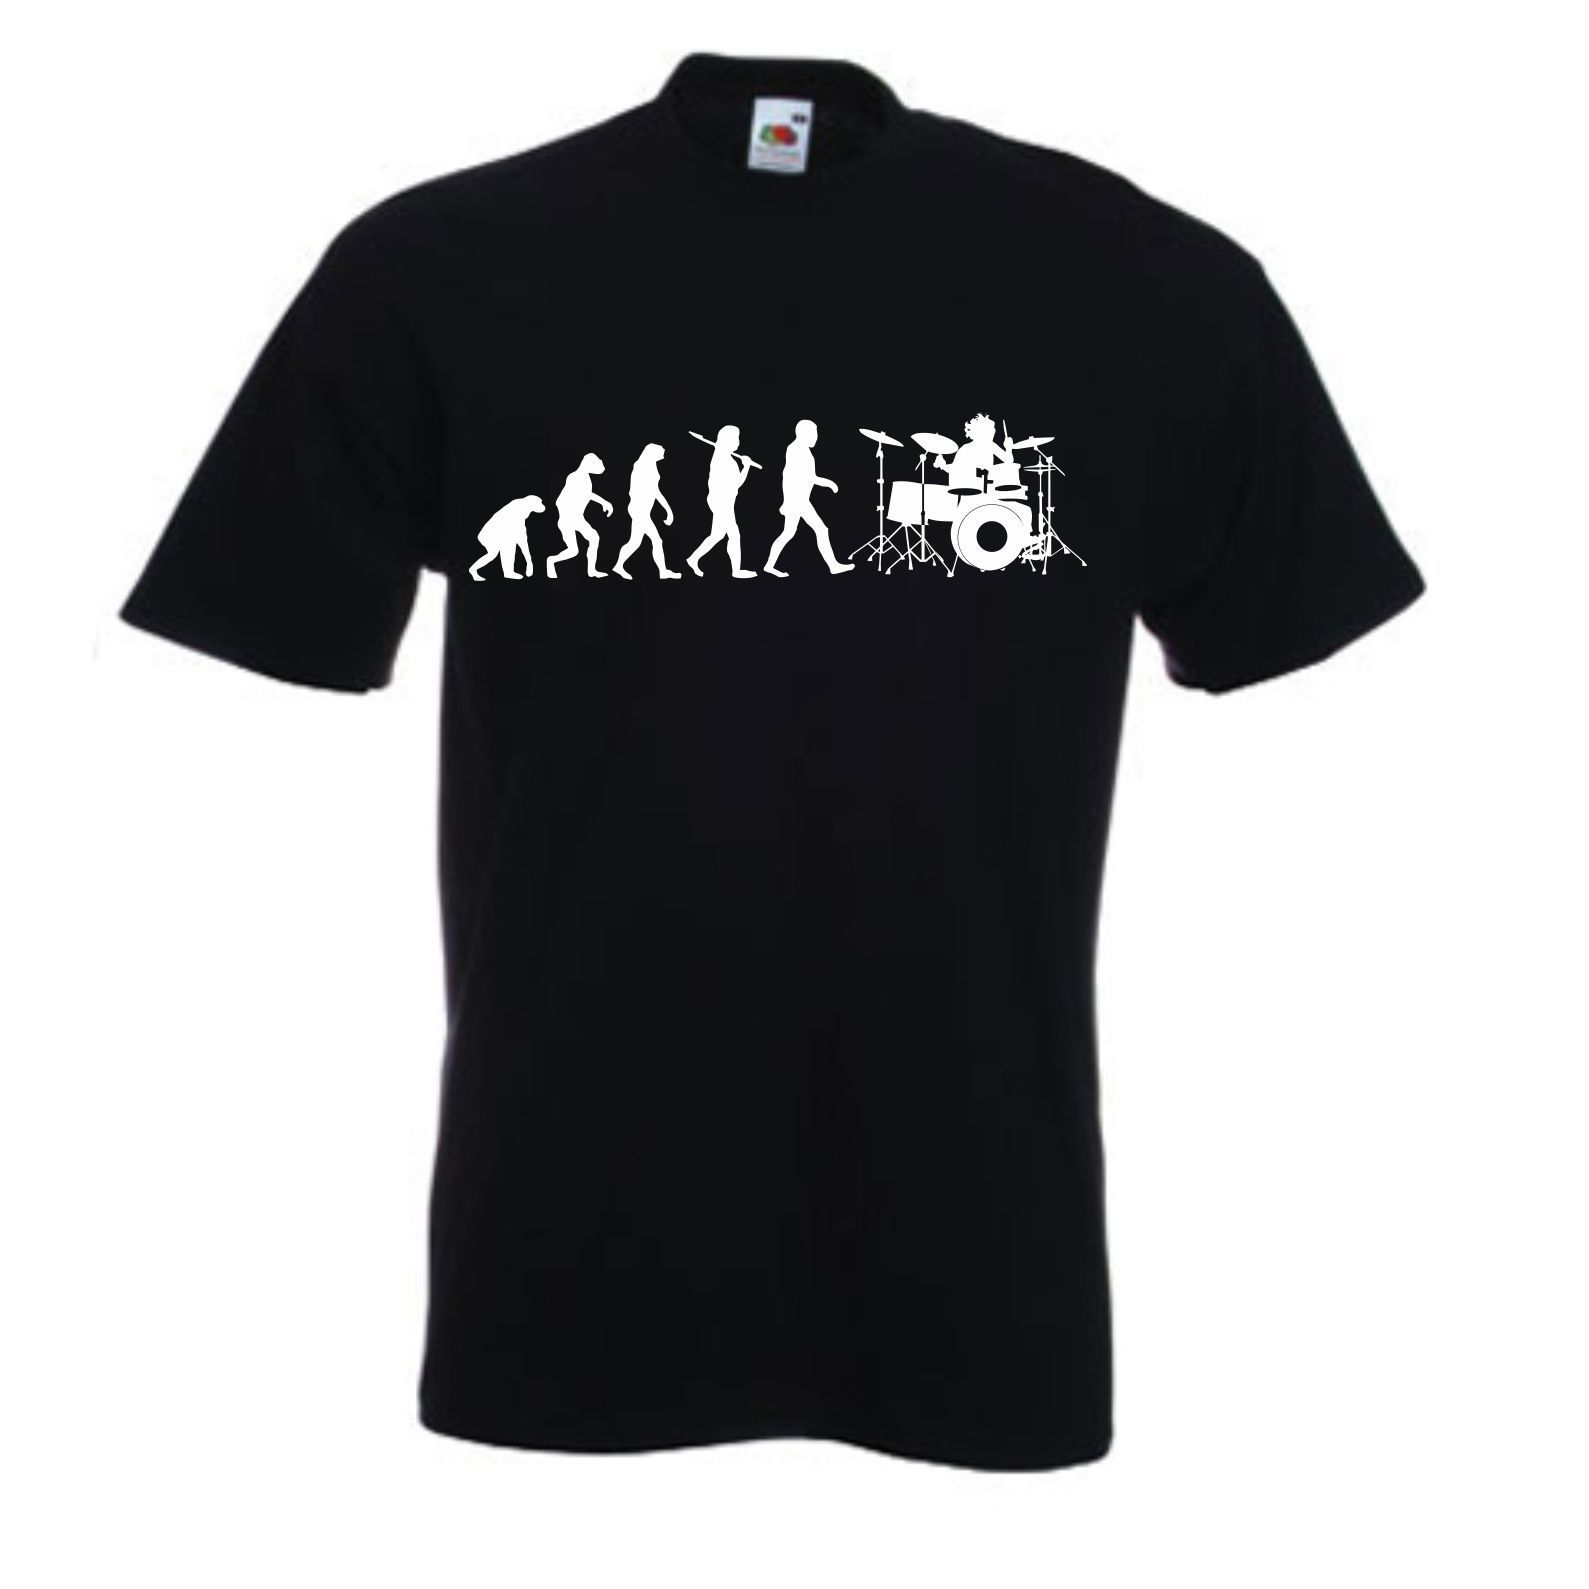 EVOLUTION OF DRUMMING T SHIRT BAND TSHIRT ROCK T SHIRT DRUM DRUMMER New T Shirts Funny Tops Tee New Unisex Funny Topsfree shipng in T Shirts from Men 39 s Clothing